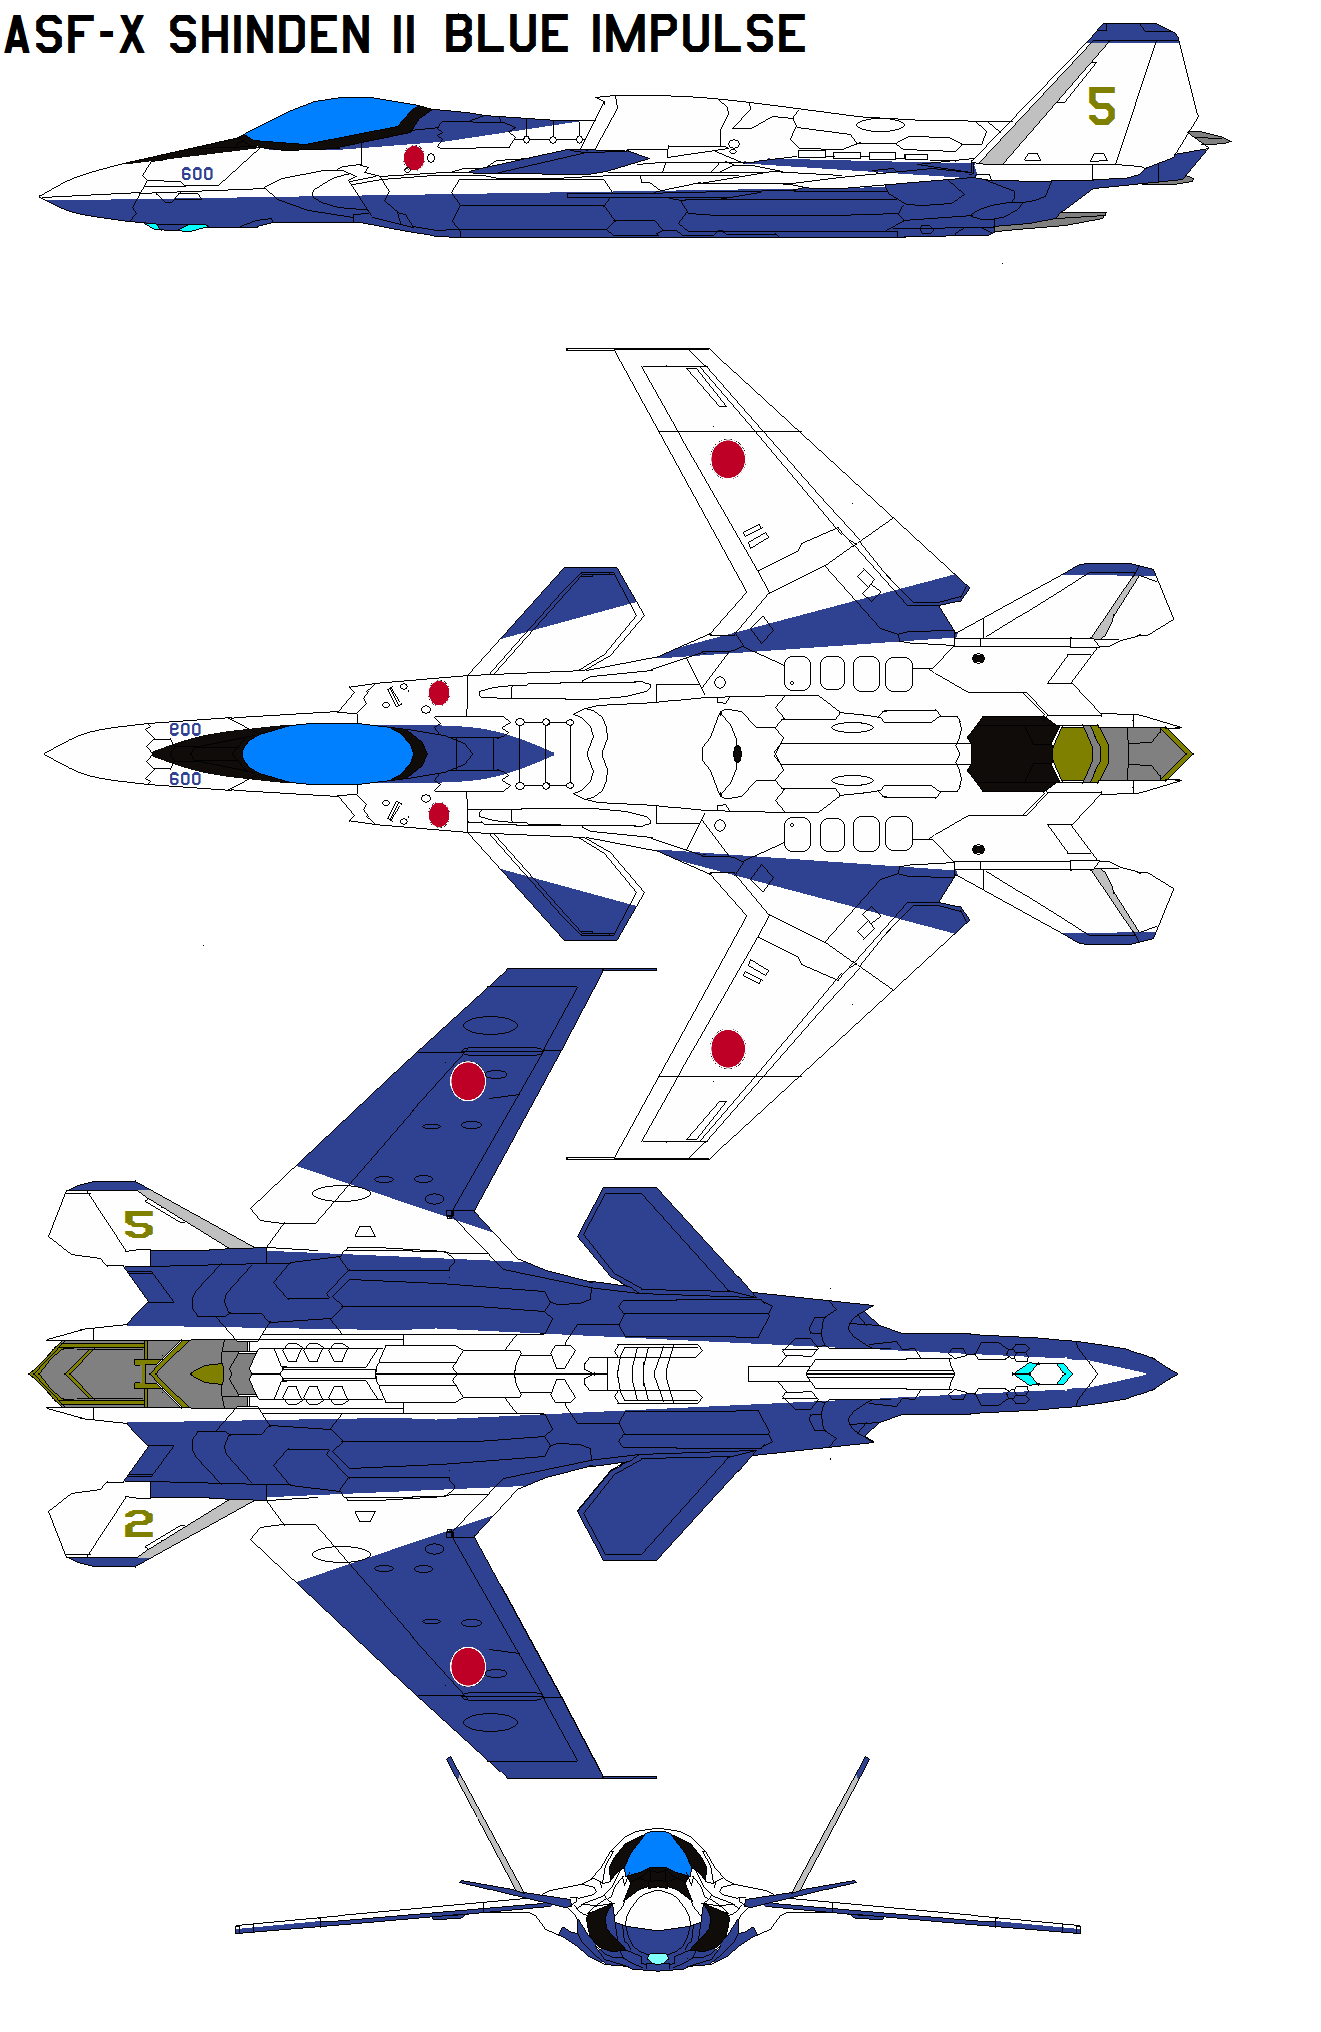 Asf x shinden ii blue impulse by bagera3005 on deviantart asf x shinden ii blue impulse by bagera3005 malvernweather Images